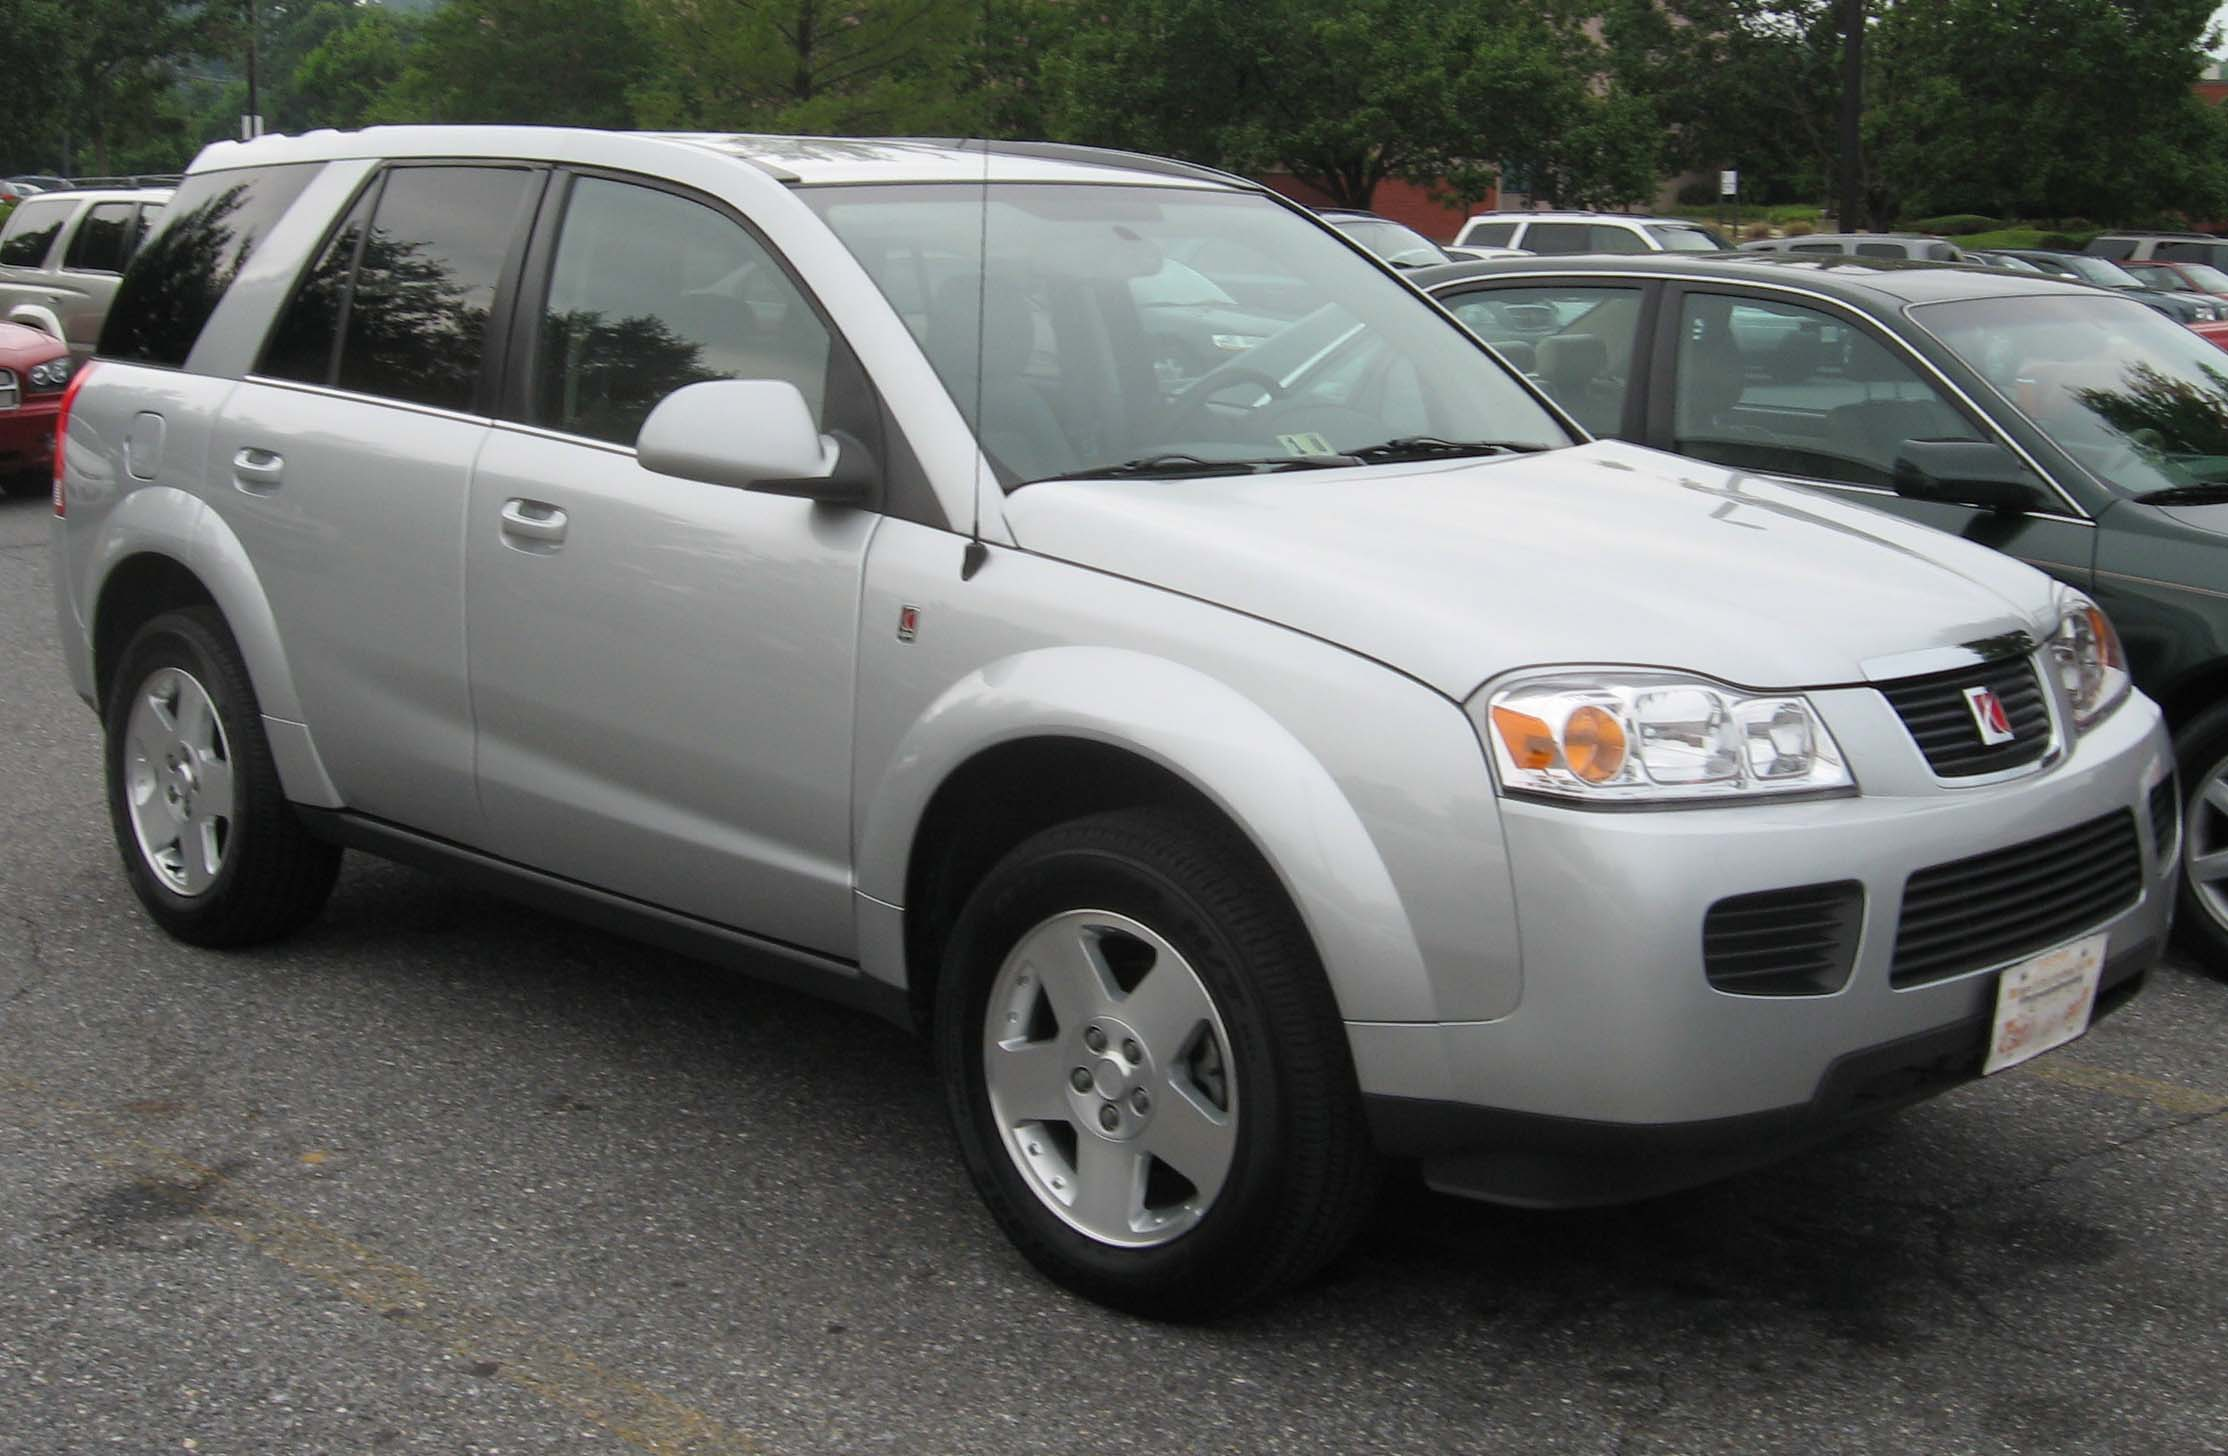 File:06 07 Saturn Vue 2